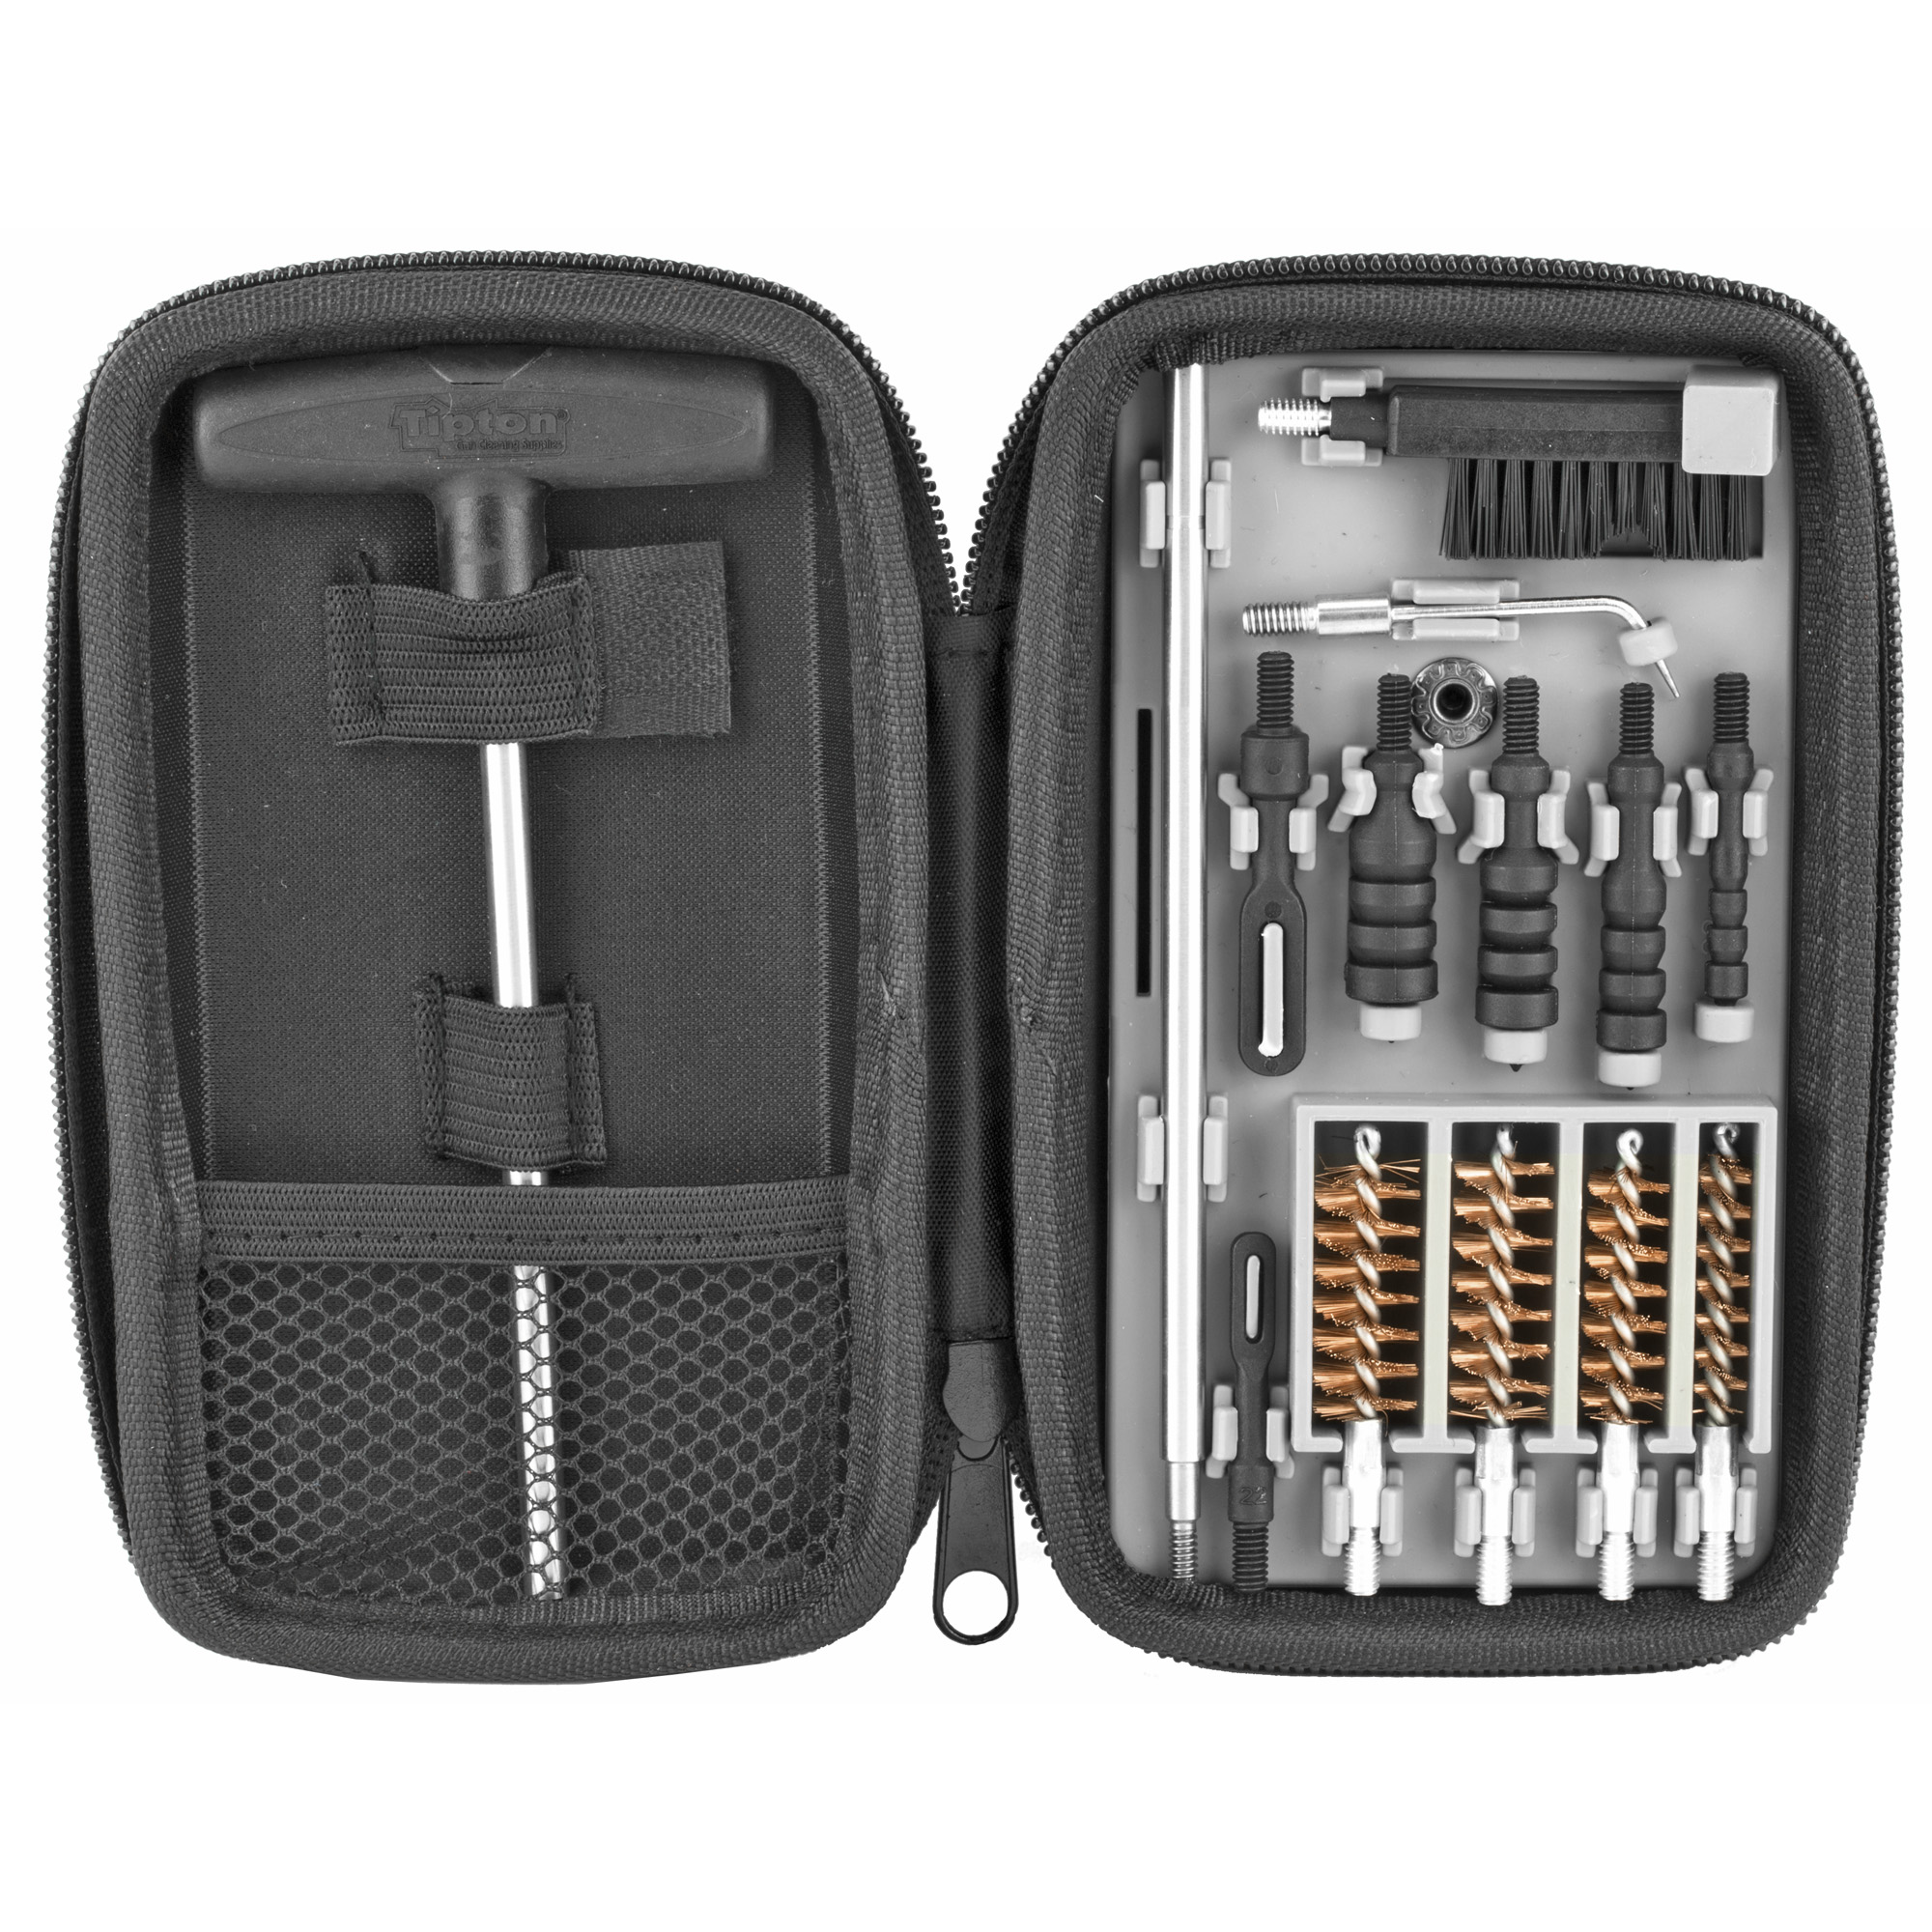 """Hold the power to clean multiple handgun calibers in the palm of your hand with the Tipton Compact Pistol Cleaning Kit. This kit comes in a semi-rigid"""" zippered carry case and can be used on handgun calibers ranging from .22-.45. Whether you travel a lot"""" clean at the range"""" or like to be organized at home"""" this kit is the perfect size for storing in small spaces and durable enough to take anywhere."""